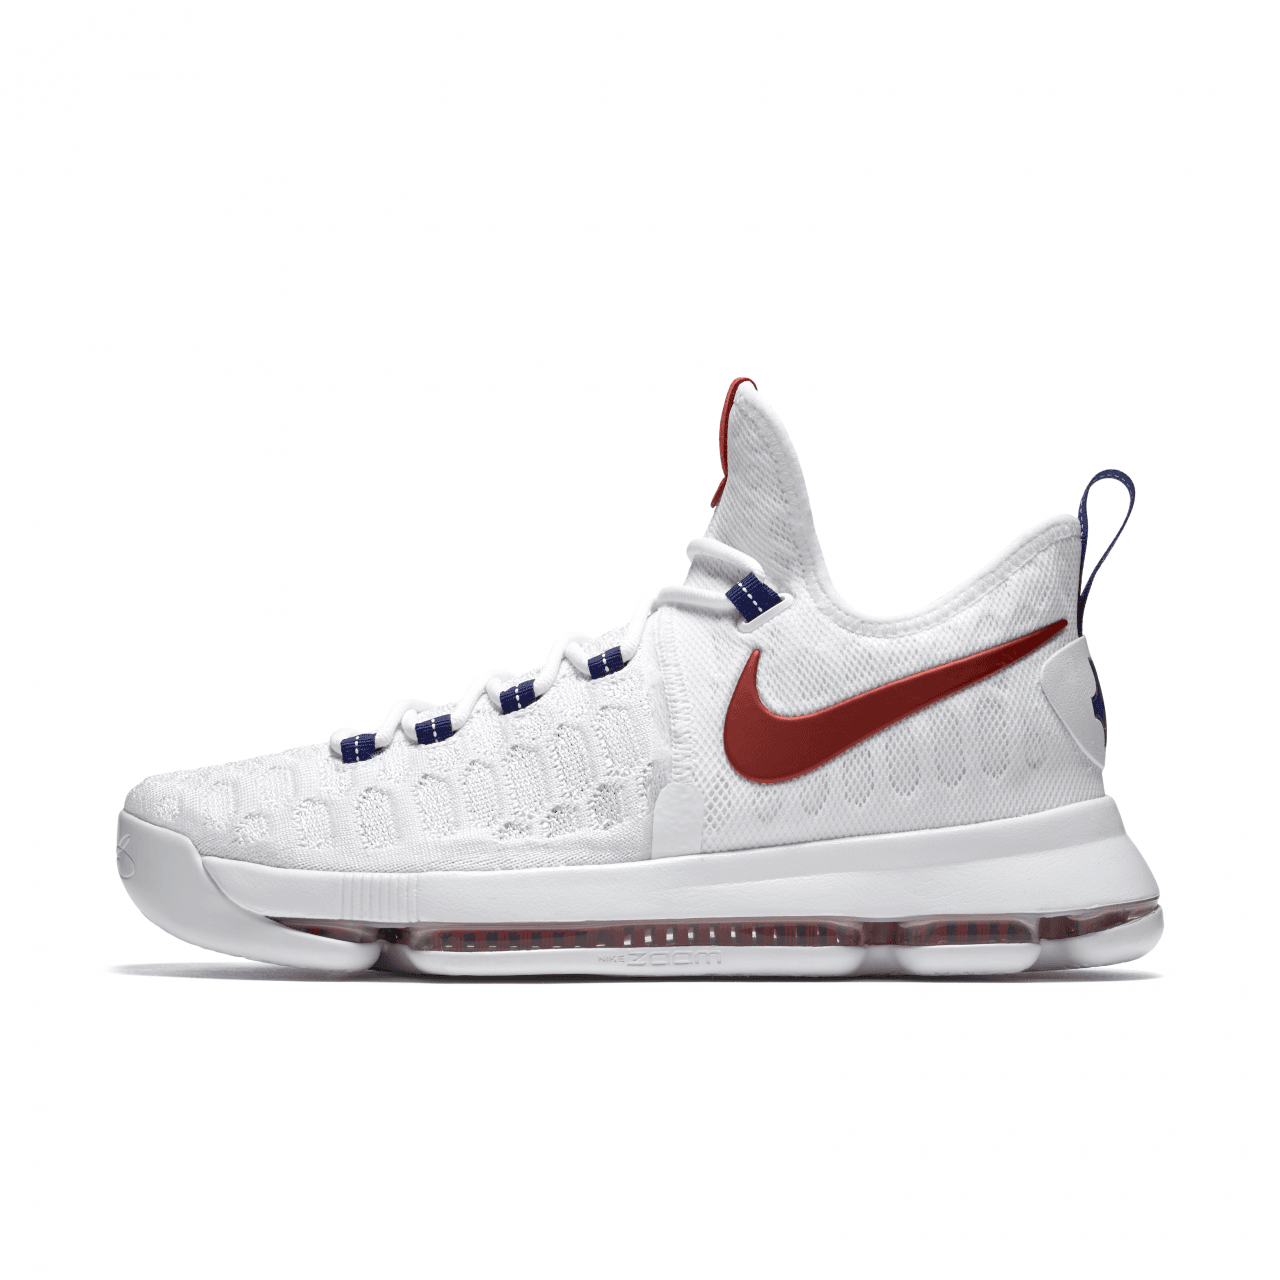 # KEVIN DURANT改變戰局KD9:Flyknit x Zoom Air 1